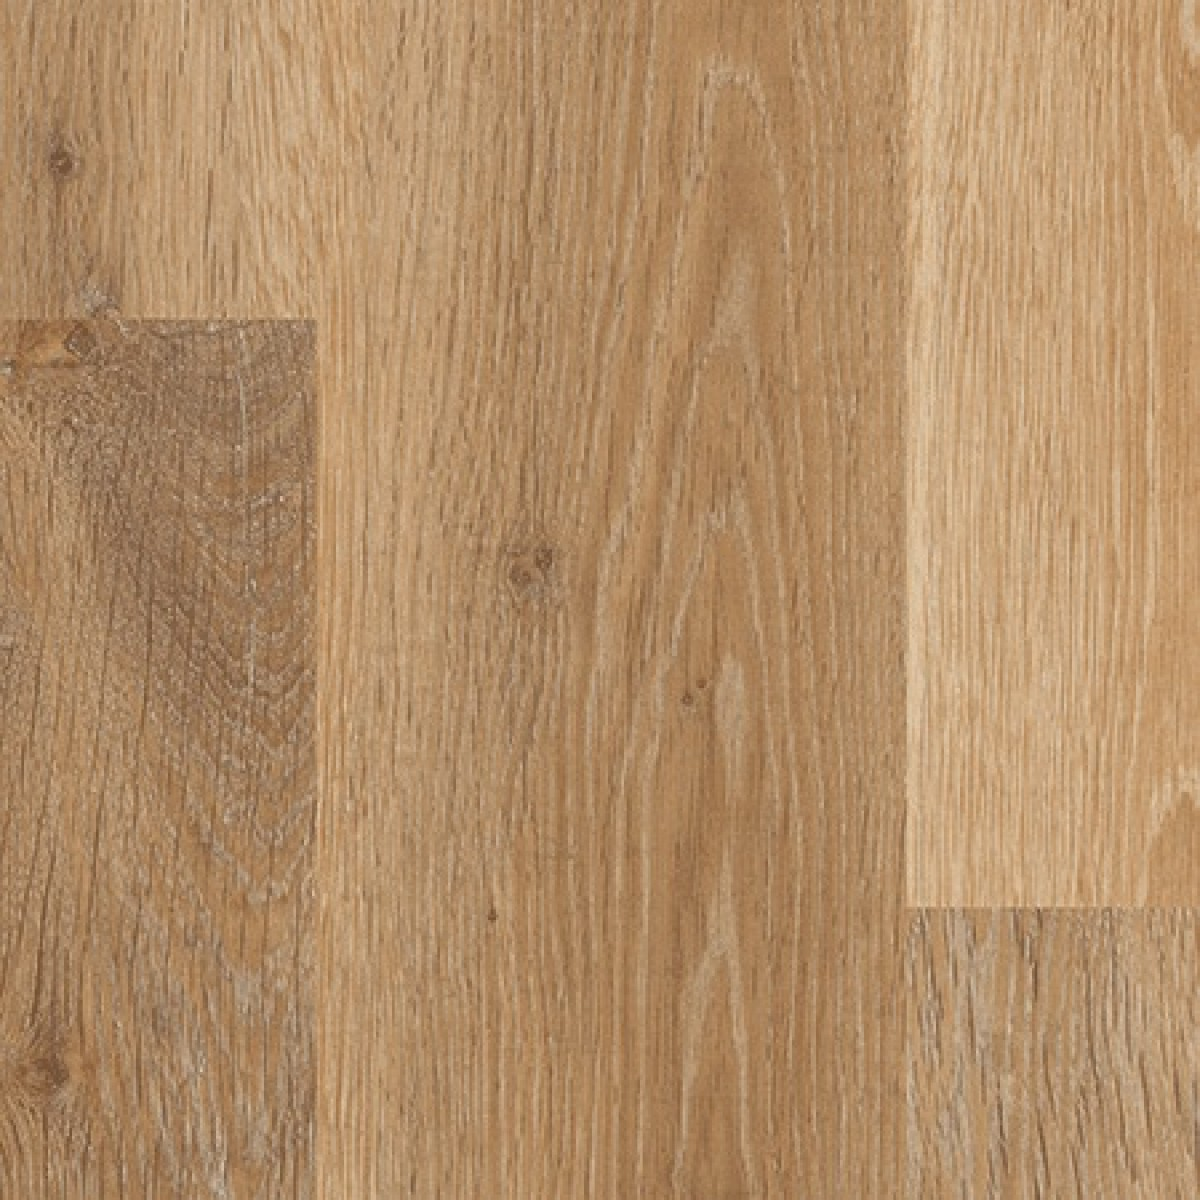 Pale Limed Oak